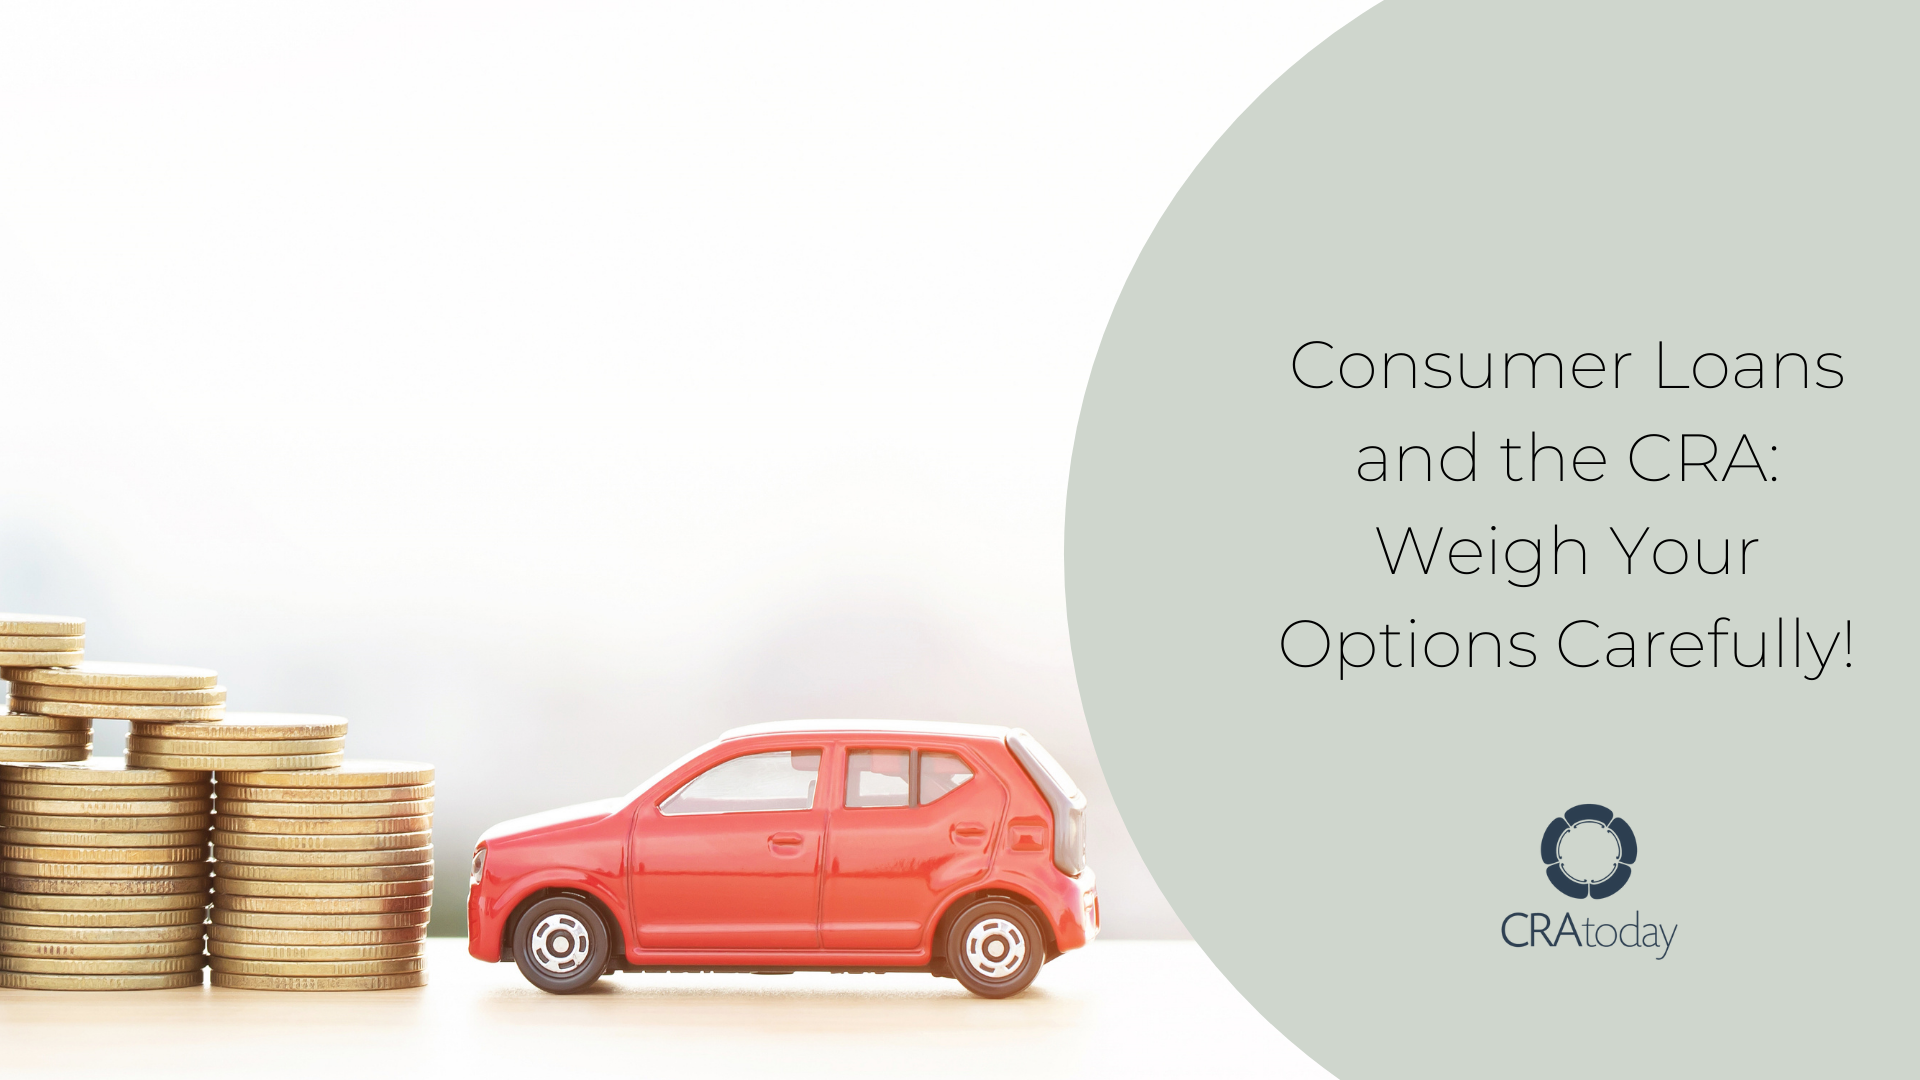 Consumer Loans and the CRA: Weigh Your Options Carefully!